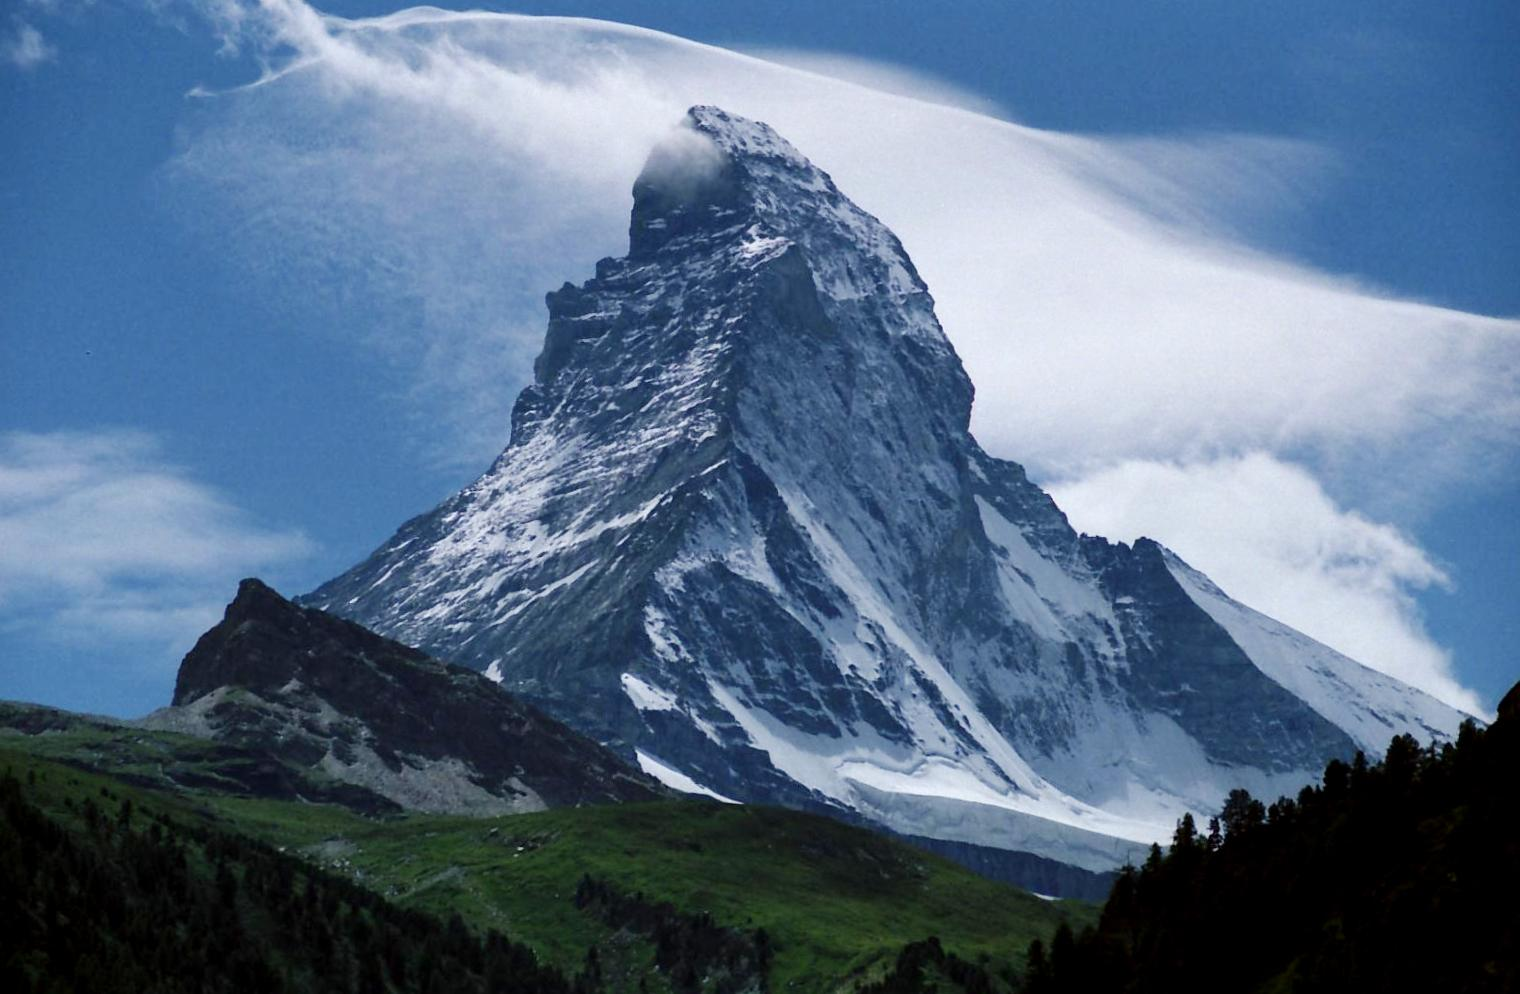 Description peak of the matterhorn, seen from zermatt, switzerland